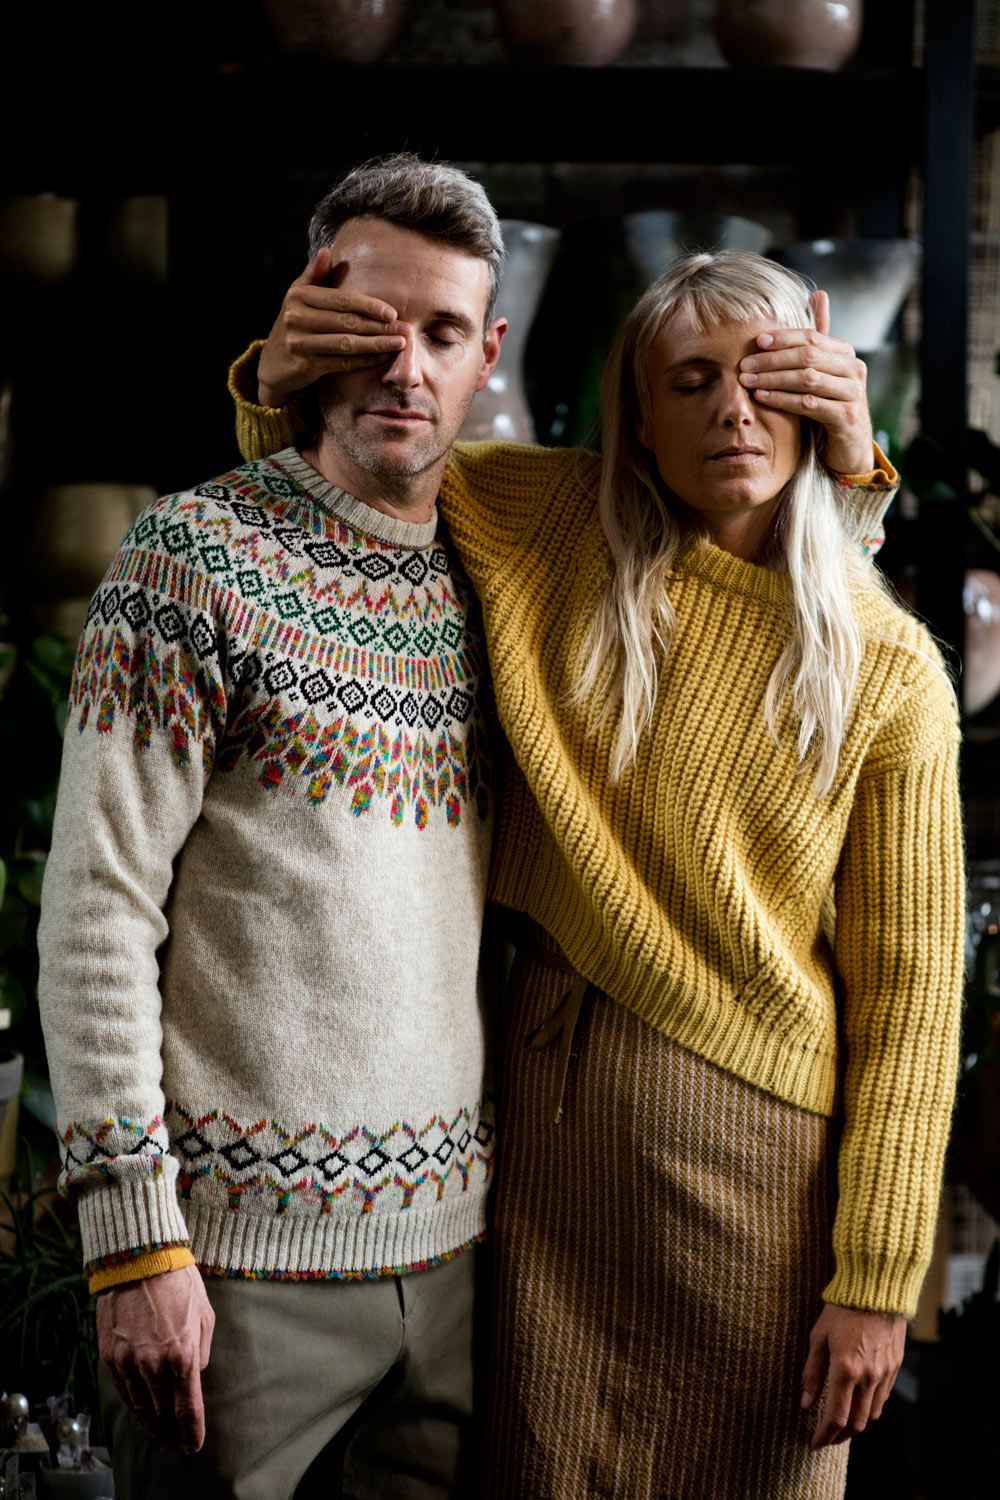 Marie is wearing Acne Studios knit and Humanoid dress, Piet is wearing Roberto Collinq and Homecore knit, and A.P.C. pants